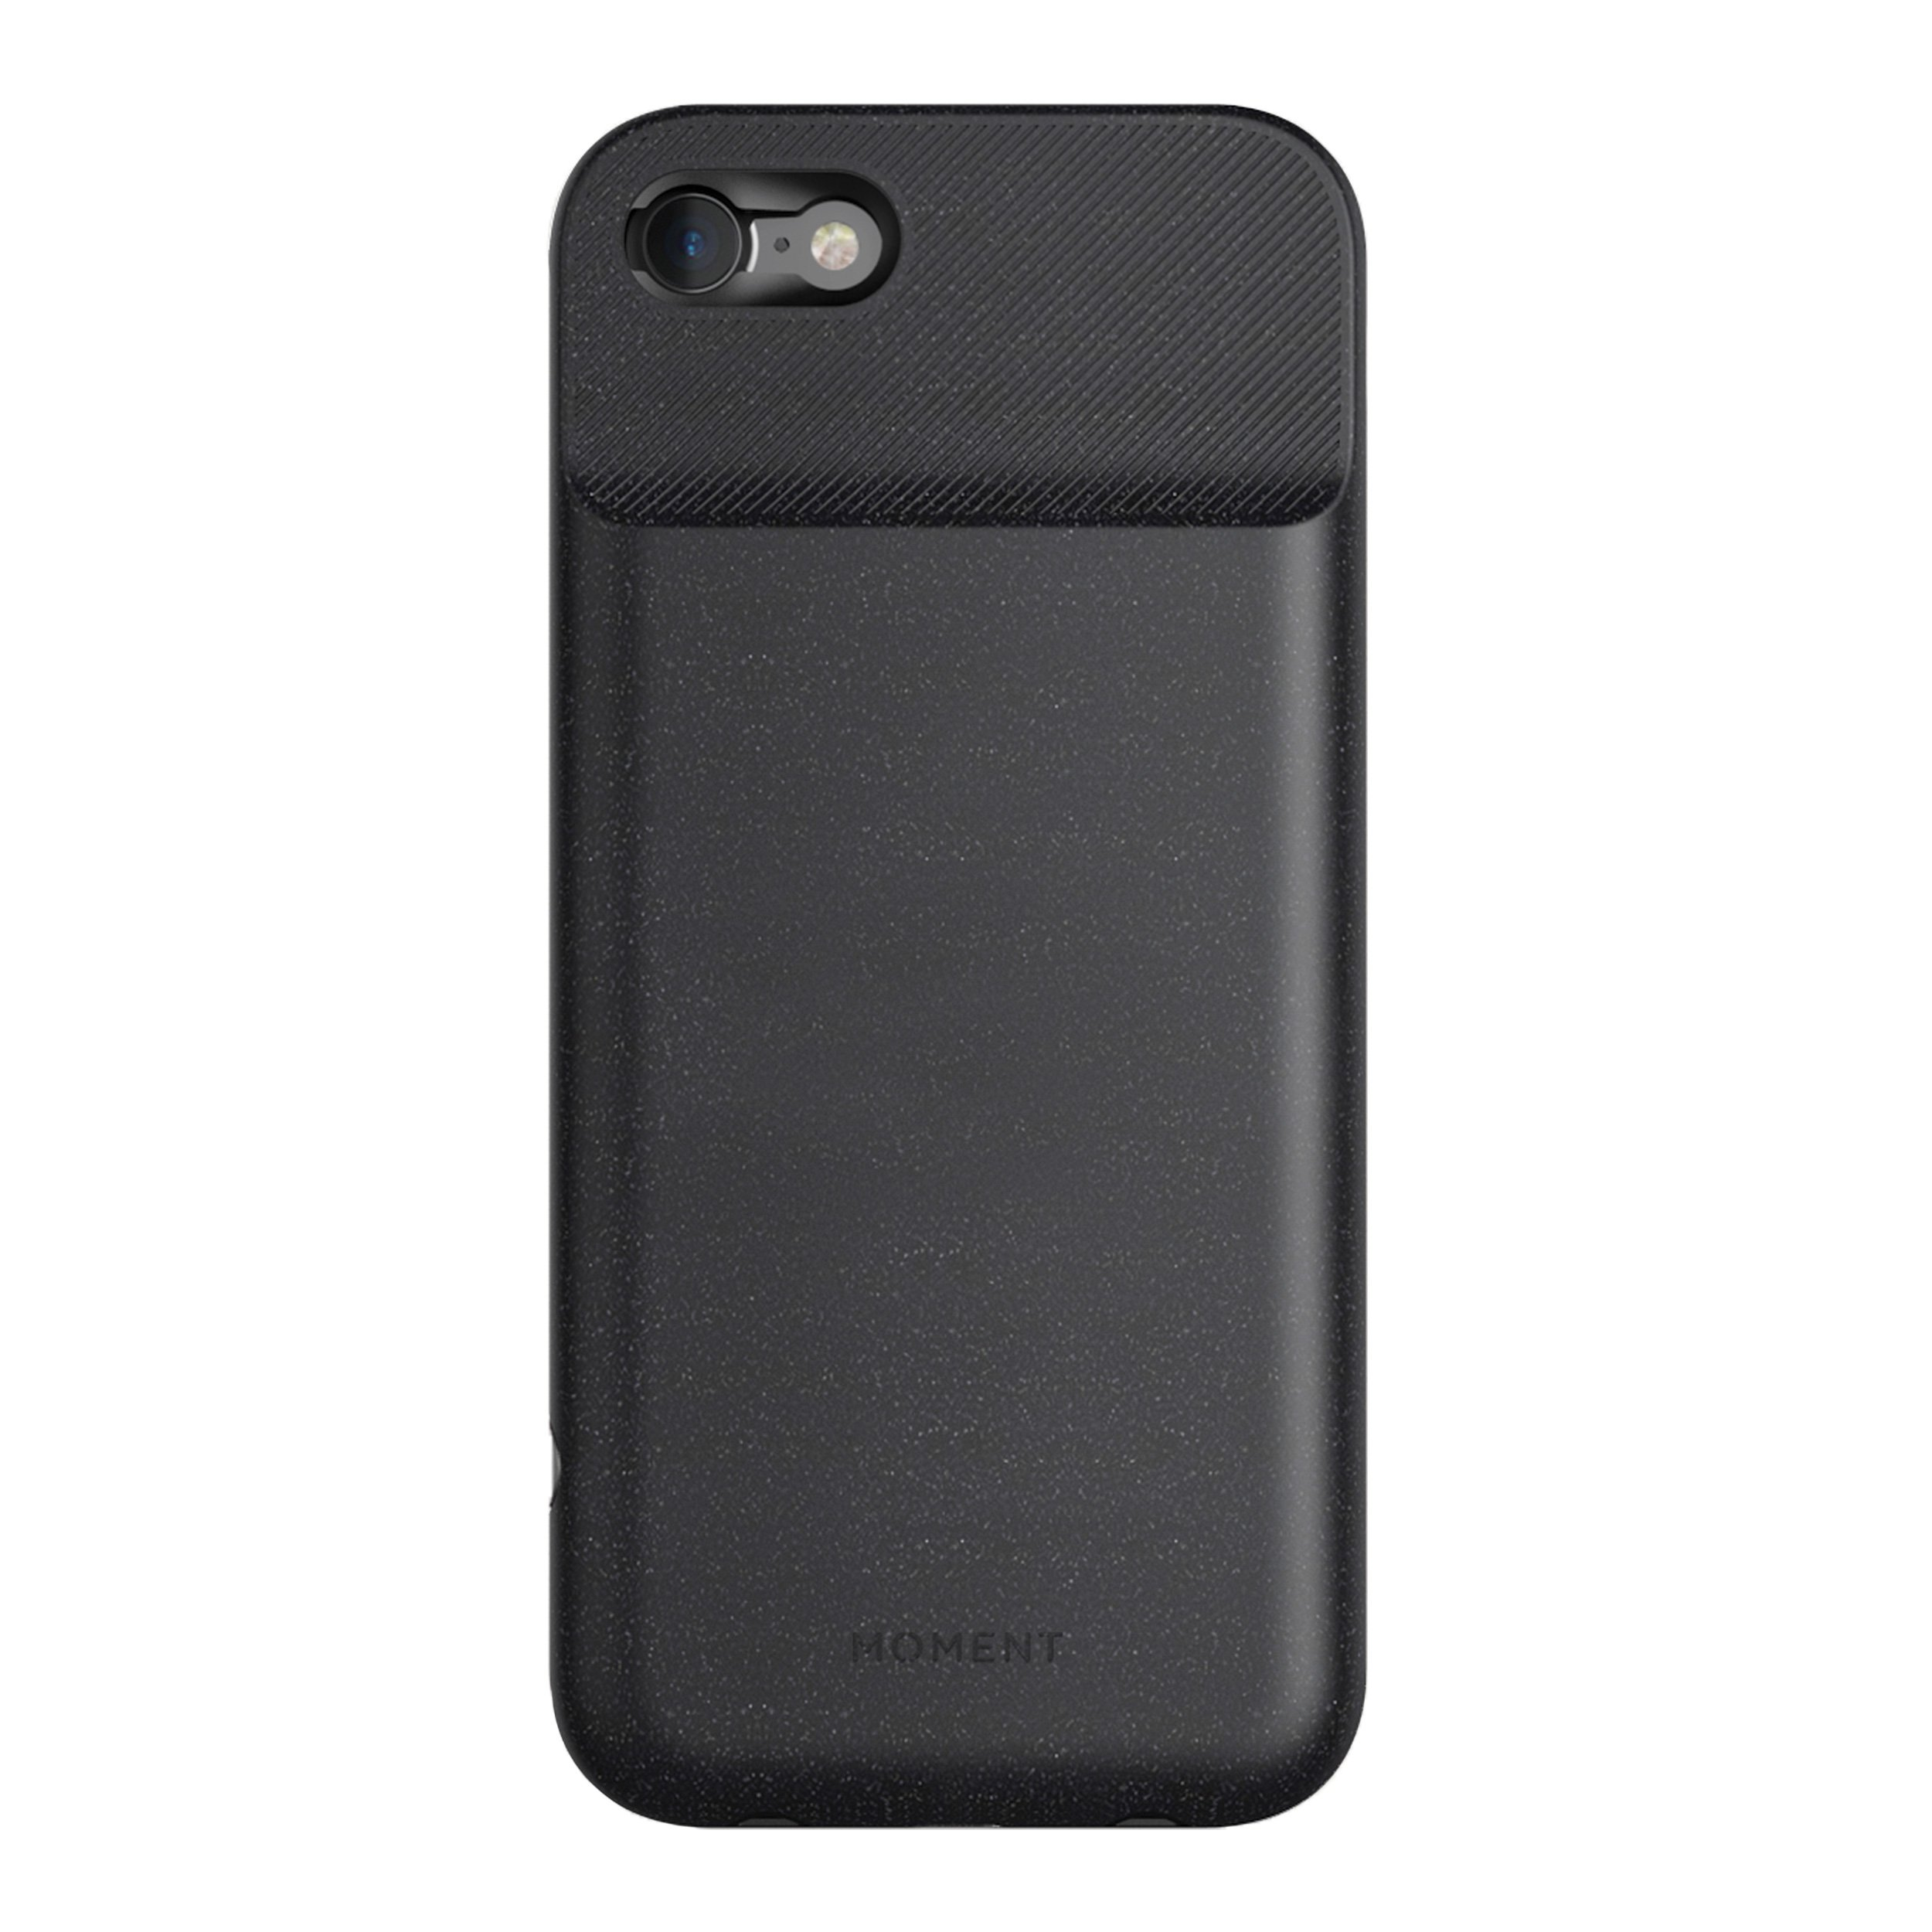 Moment - Battery Photography Case - iPhone 8 and iPhone 7 - Protect, Charge, and take Better Pictures.